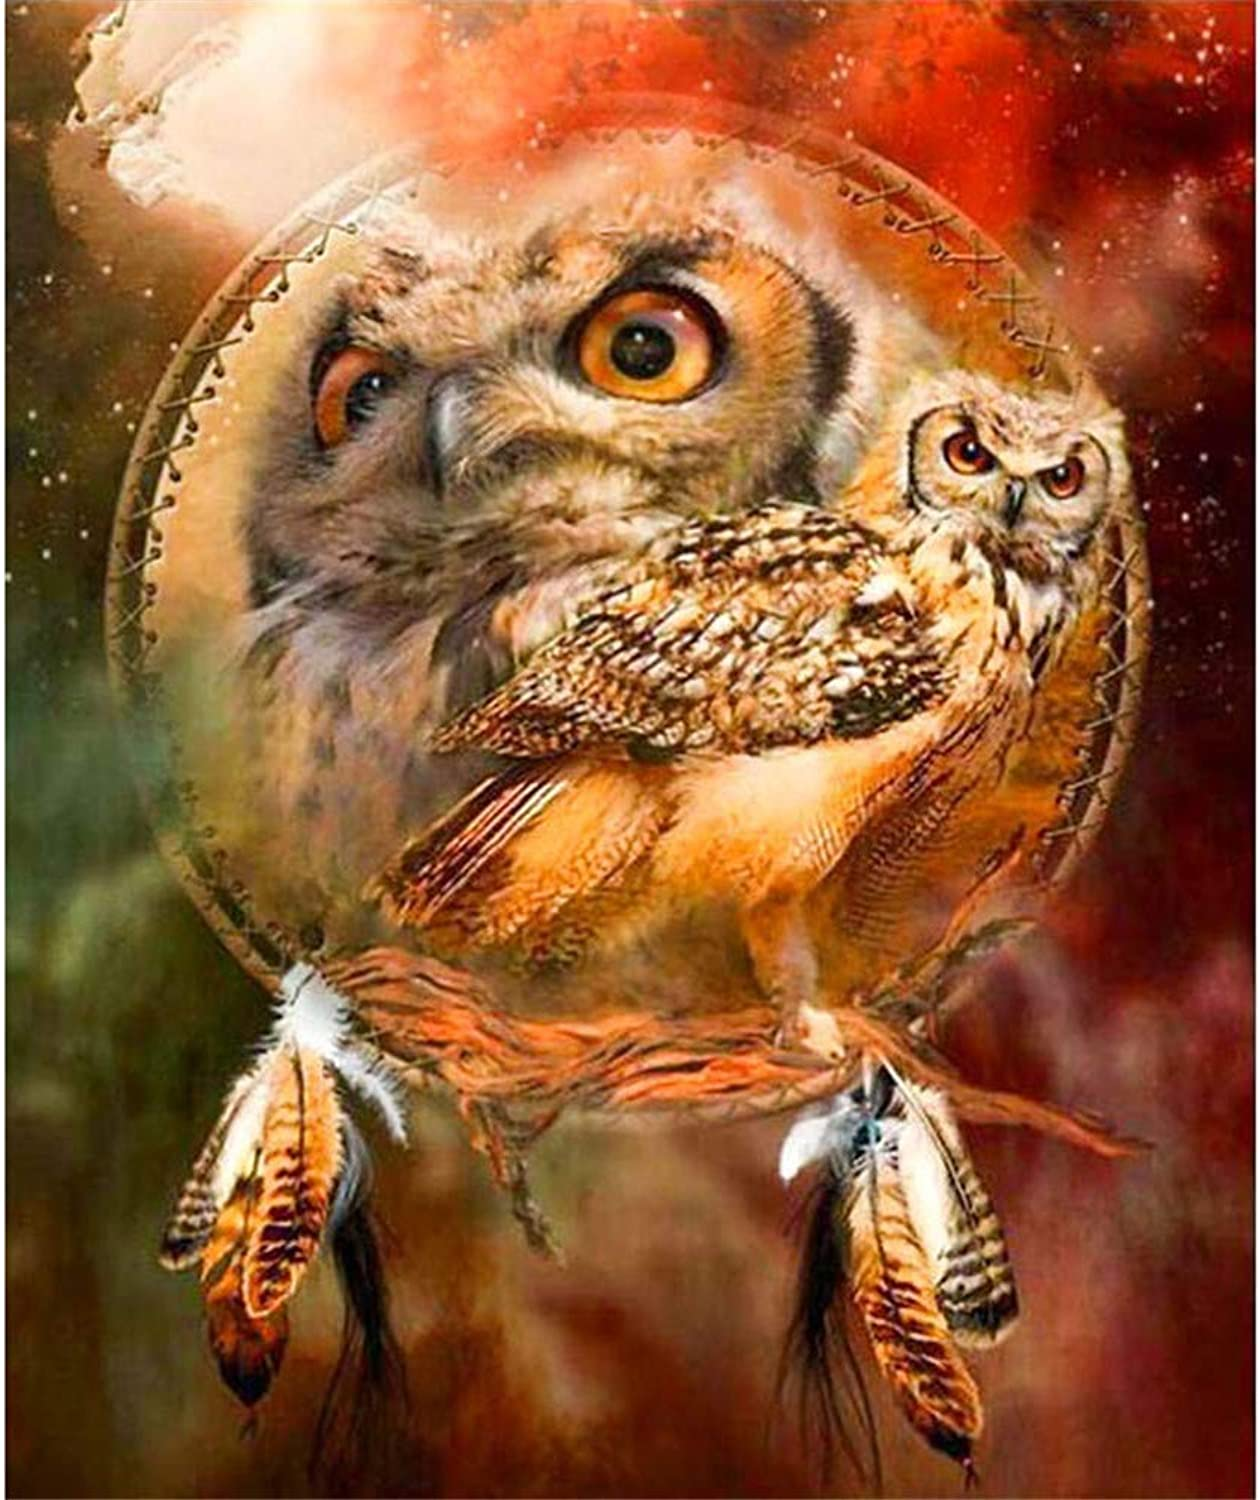 DIY Oil Paint by Number Kit for Adults Beginner 16x20 Inch - Owl,Drawing with Brushes Living Room Decor Decorations Gifts (Framed)